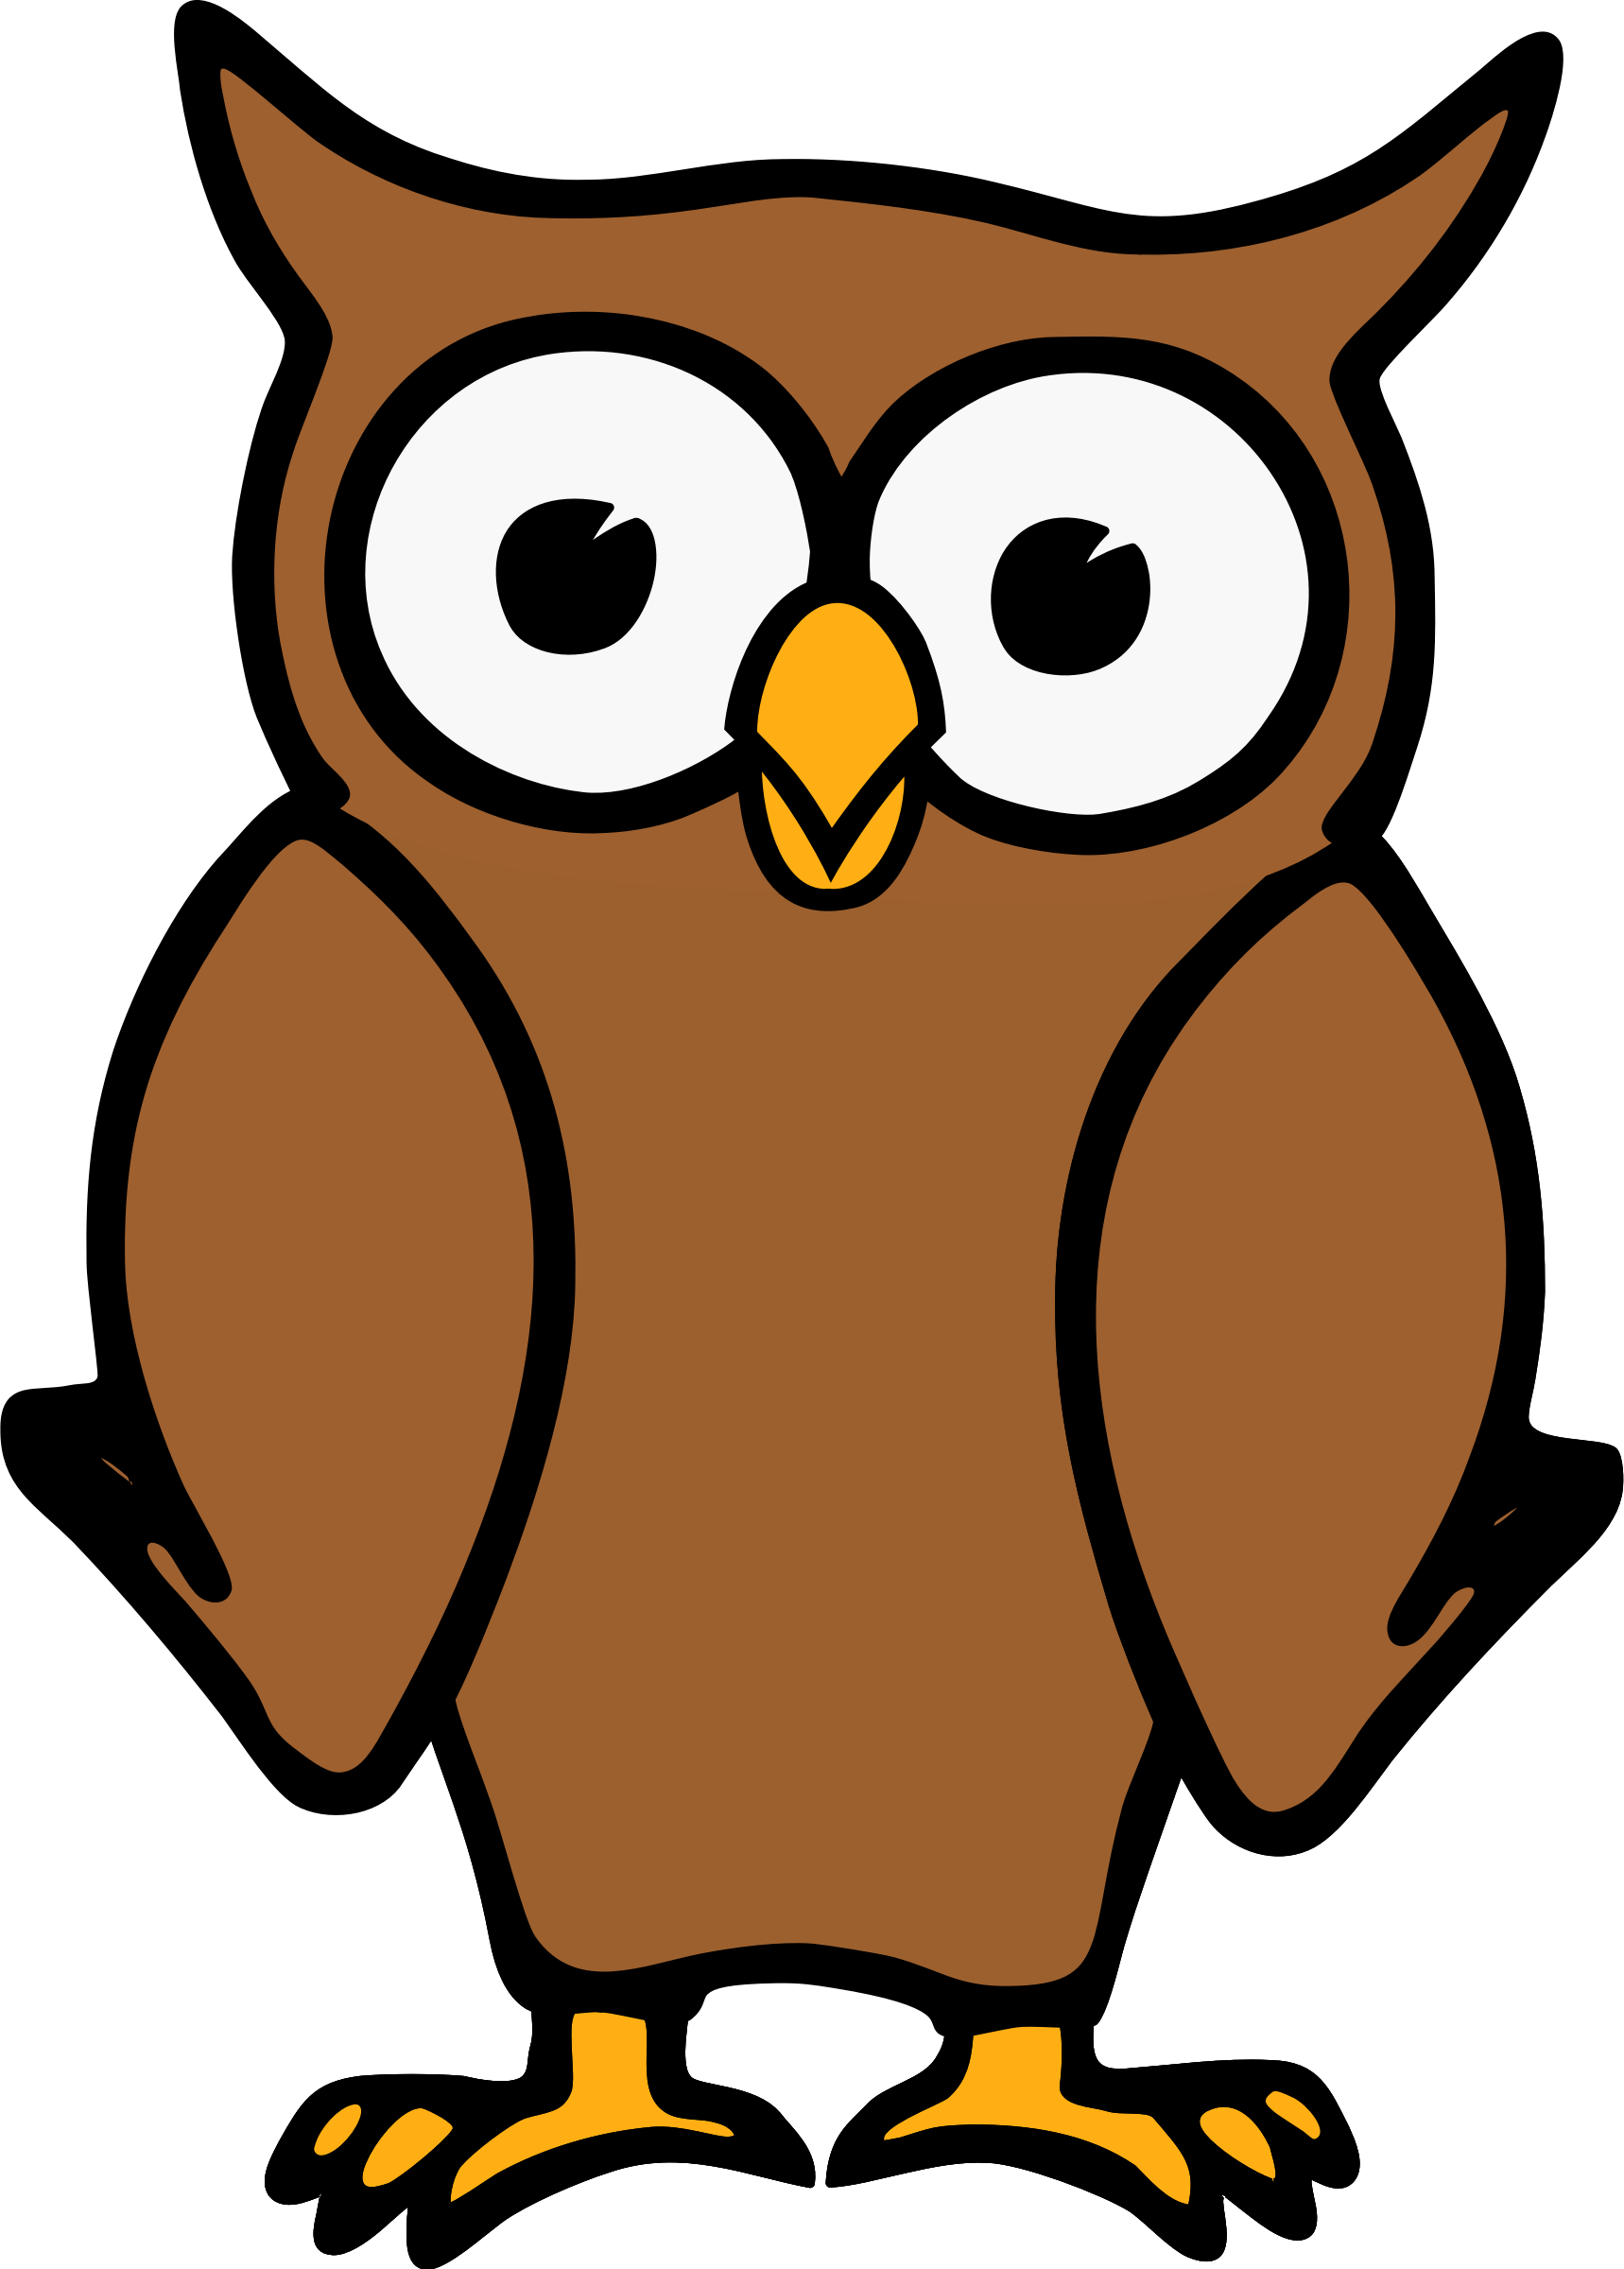 banner free download Years clipart owl. Clip art arts for